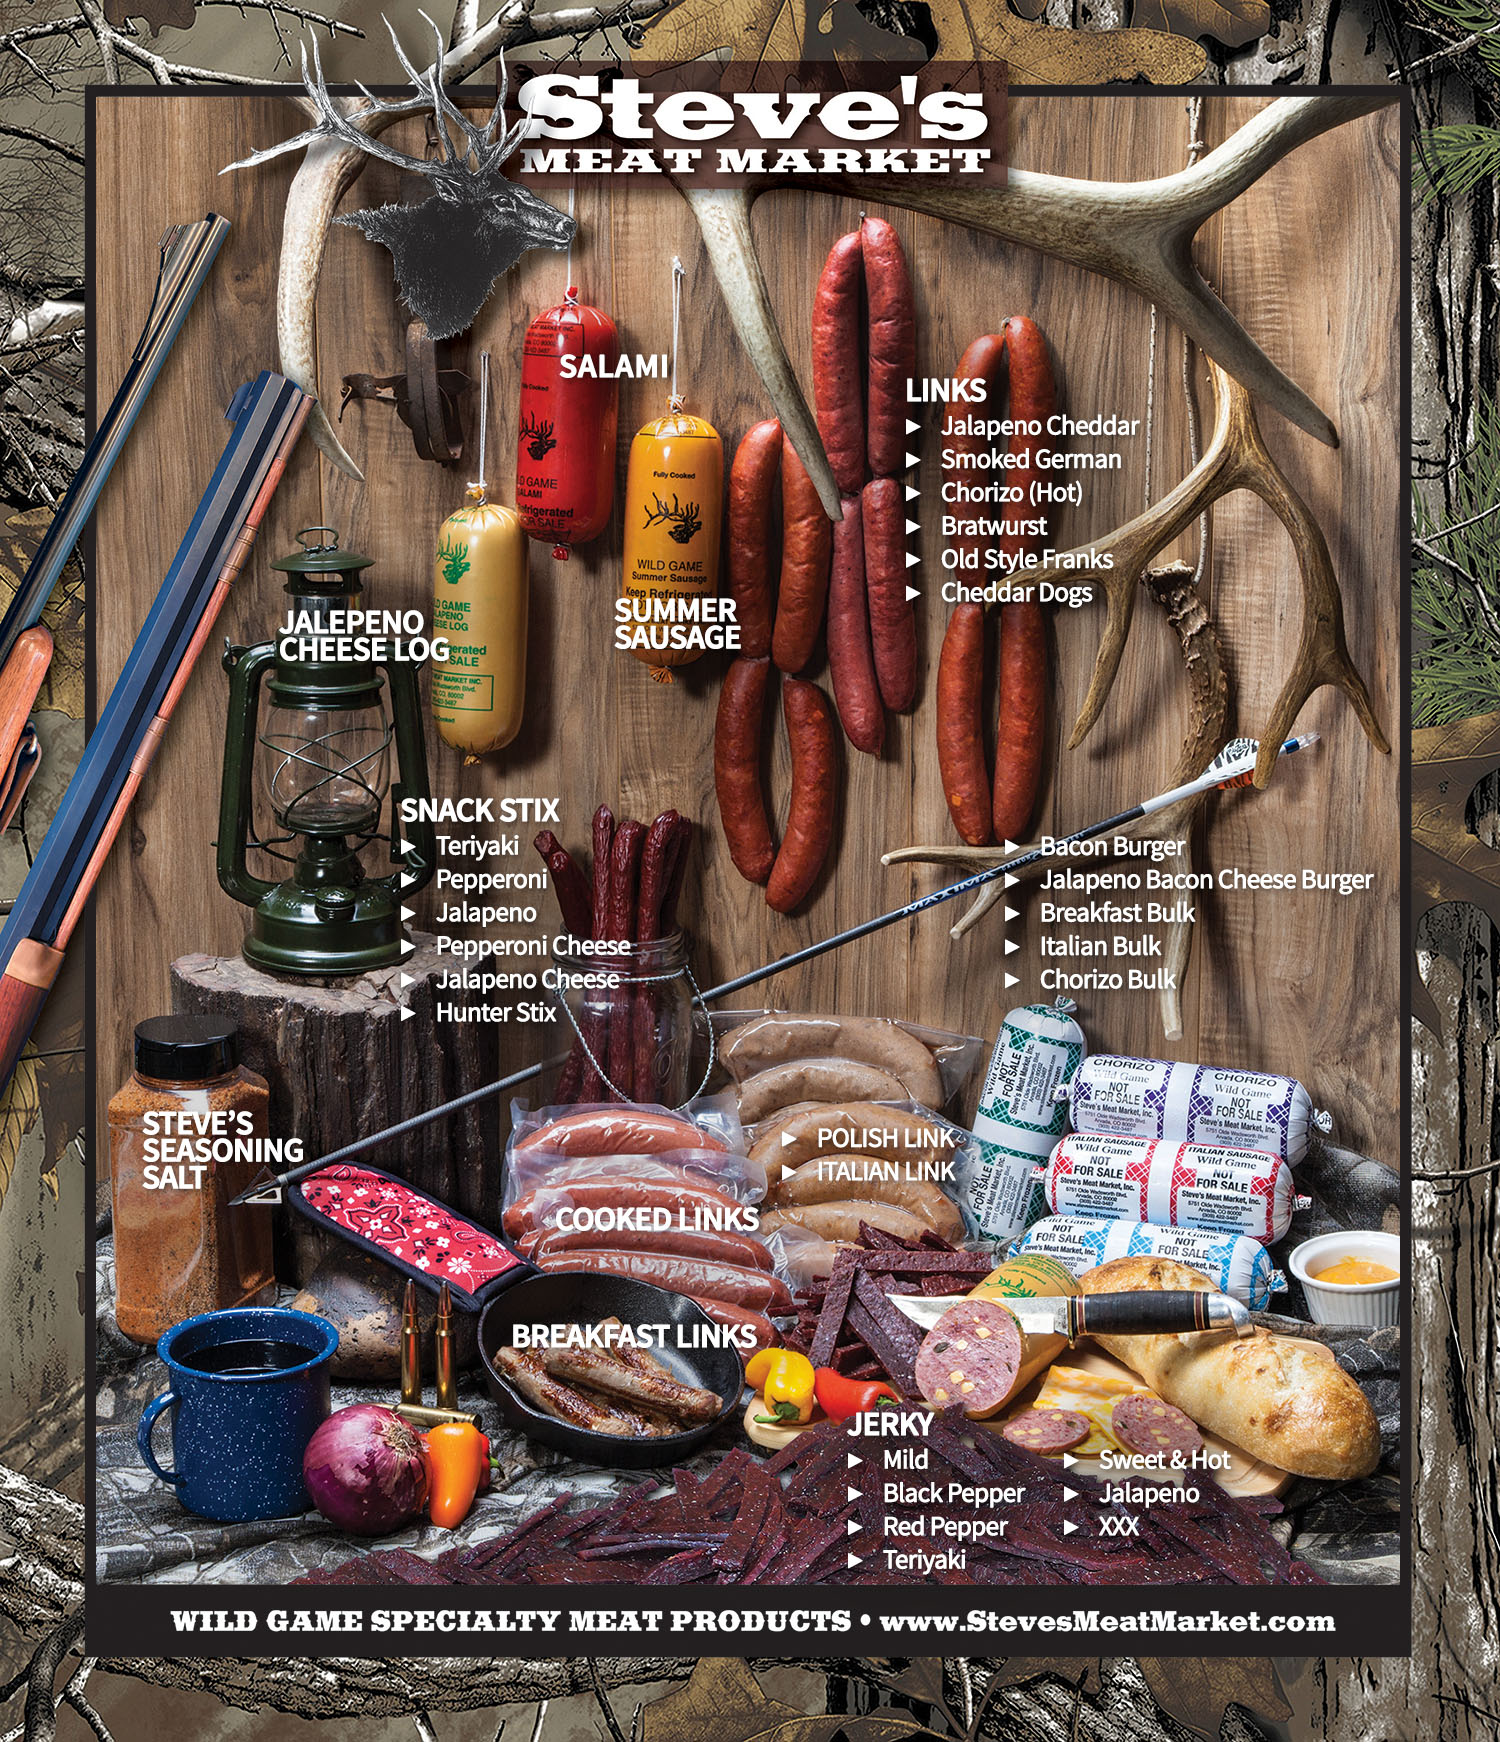 August 29, 2020: Steve's Meat Market – HECS Camo Gear